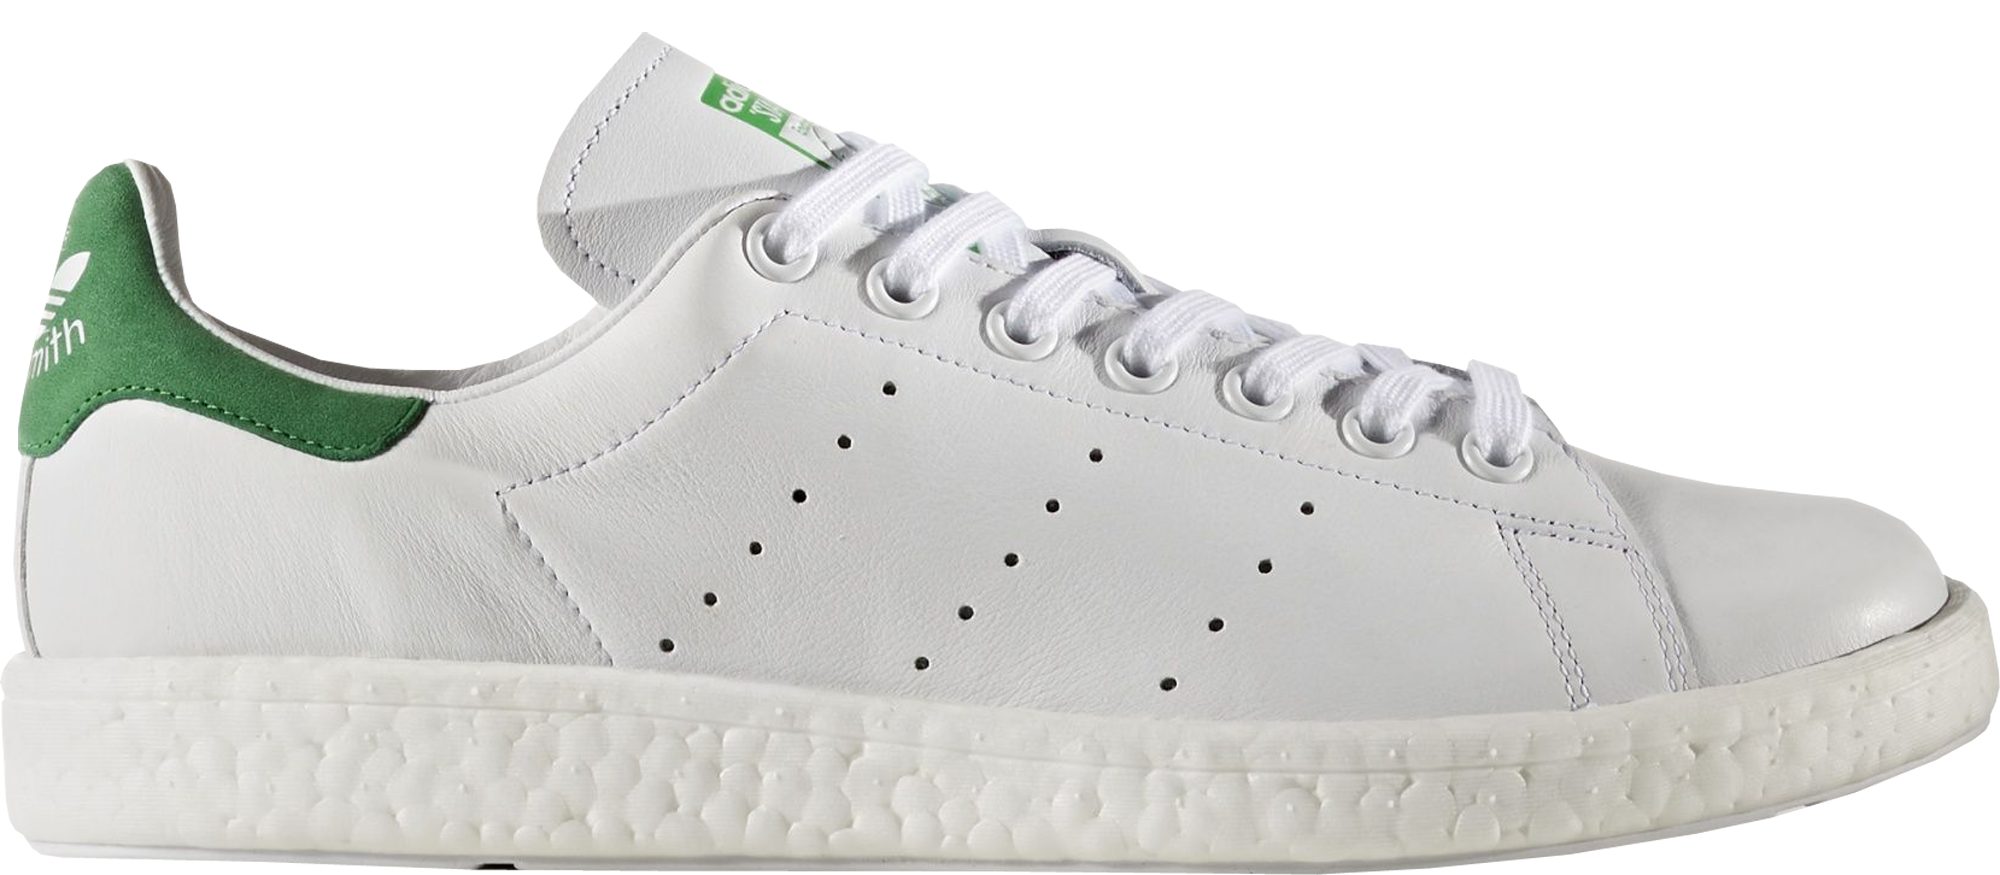 8f549f0c2d2 adidas Stan Smith Boost White Green - StockX News